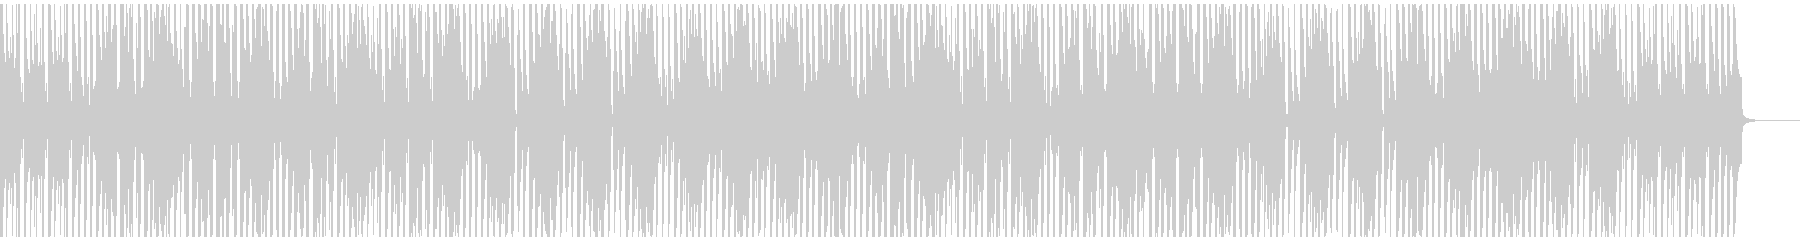 Comical and fun BGM of ukulele and whistling's unreproduced waveform